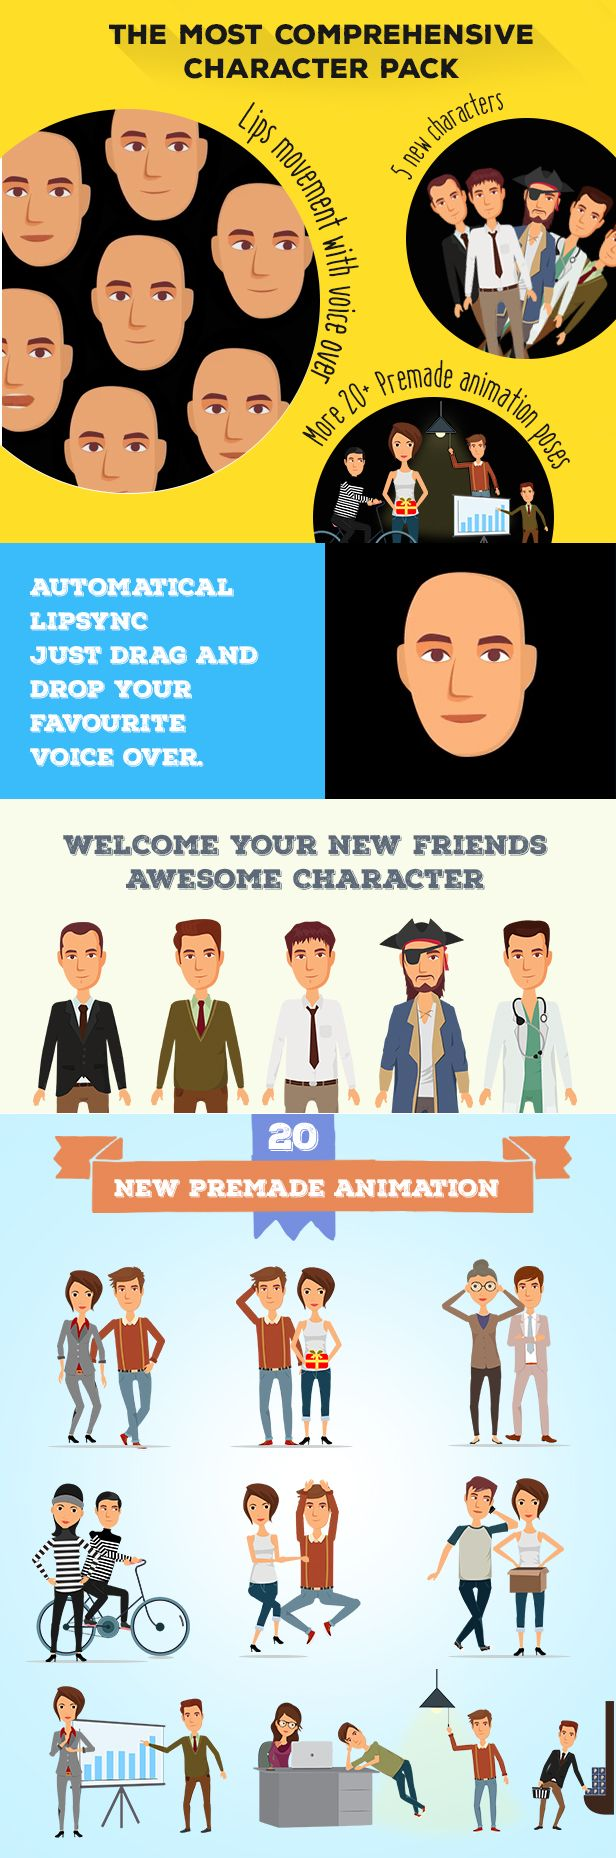 Character Design Animation Toolkit After Effects Project : Best images about after effects templates on pinterest